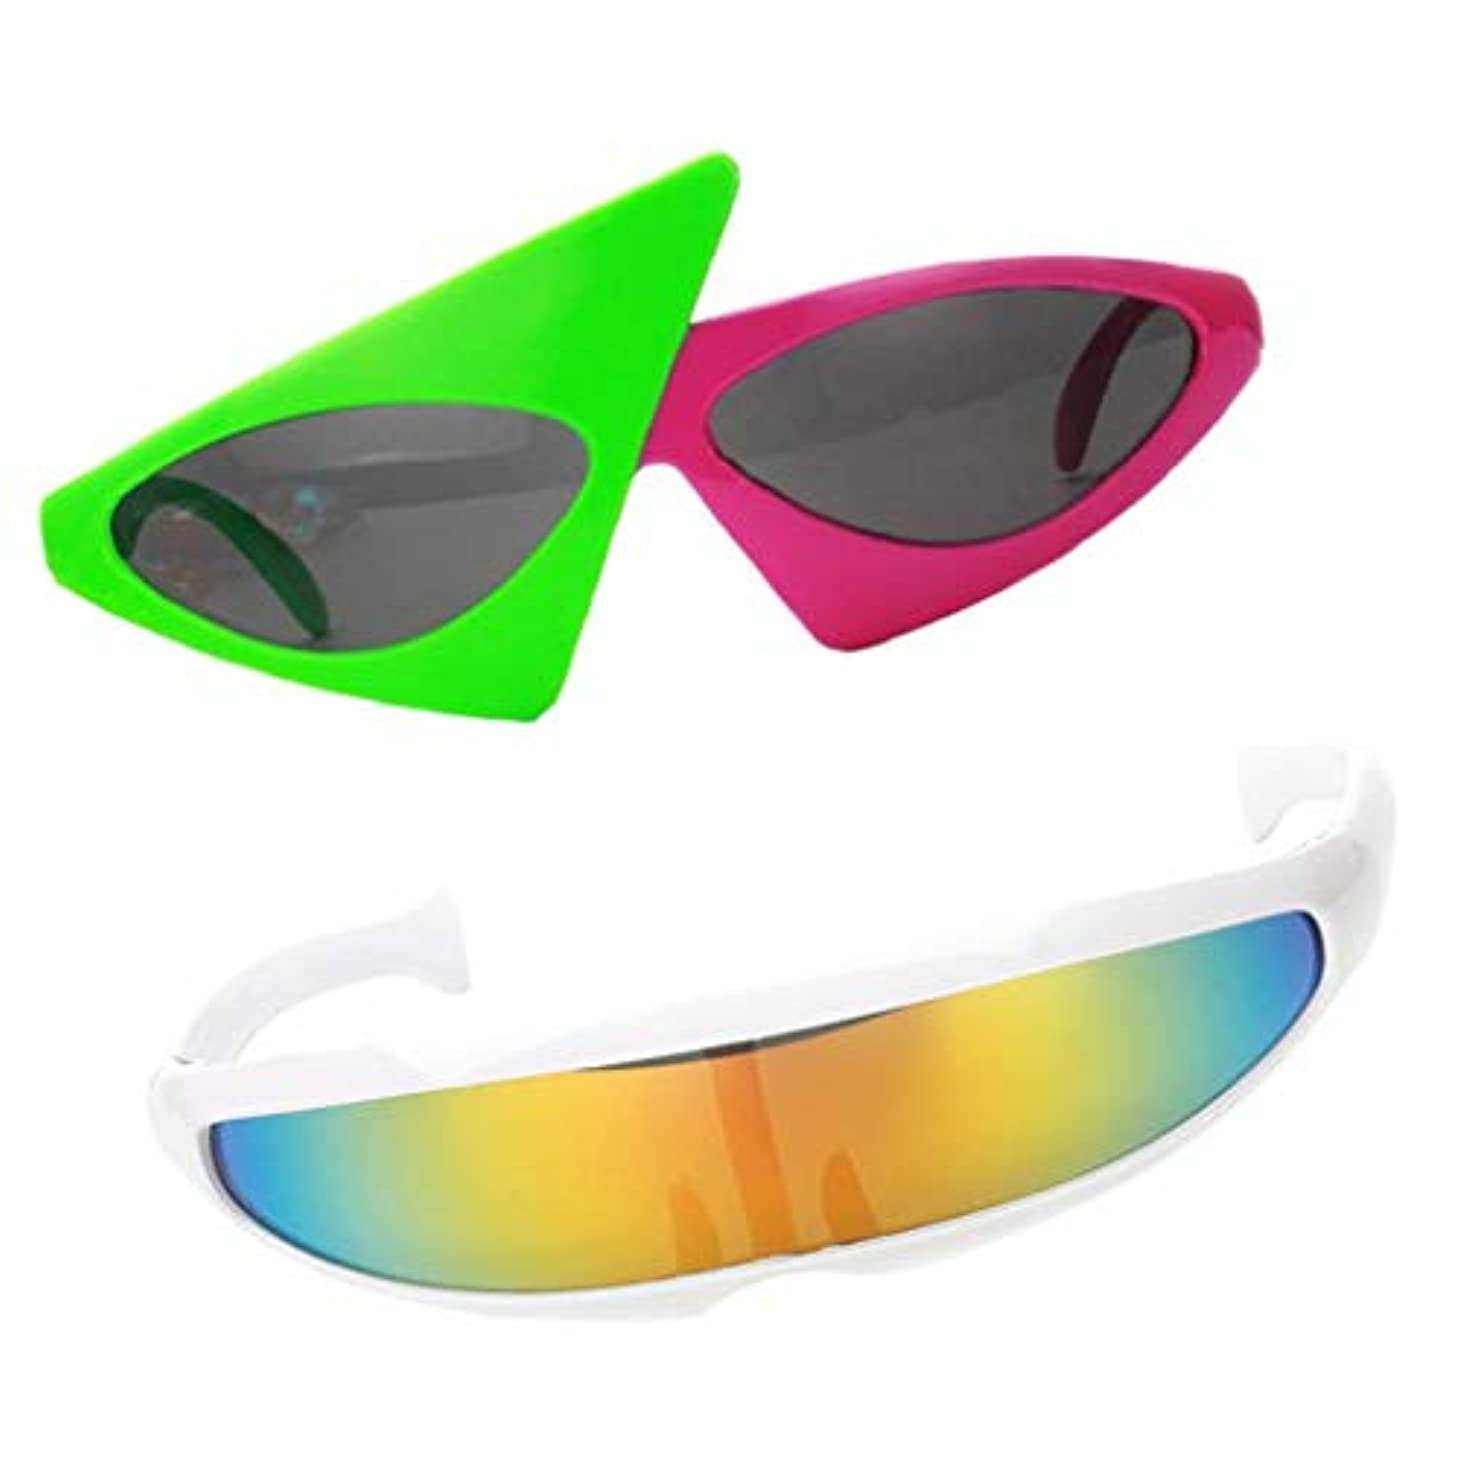 Fityle 2 Pieces Fashion Cosplay Sunglasses Party Glasses Photo Props Futuristic Narrow Roy Purdy Holiday Gifts